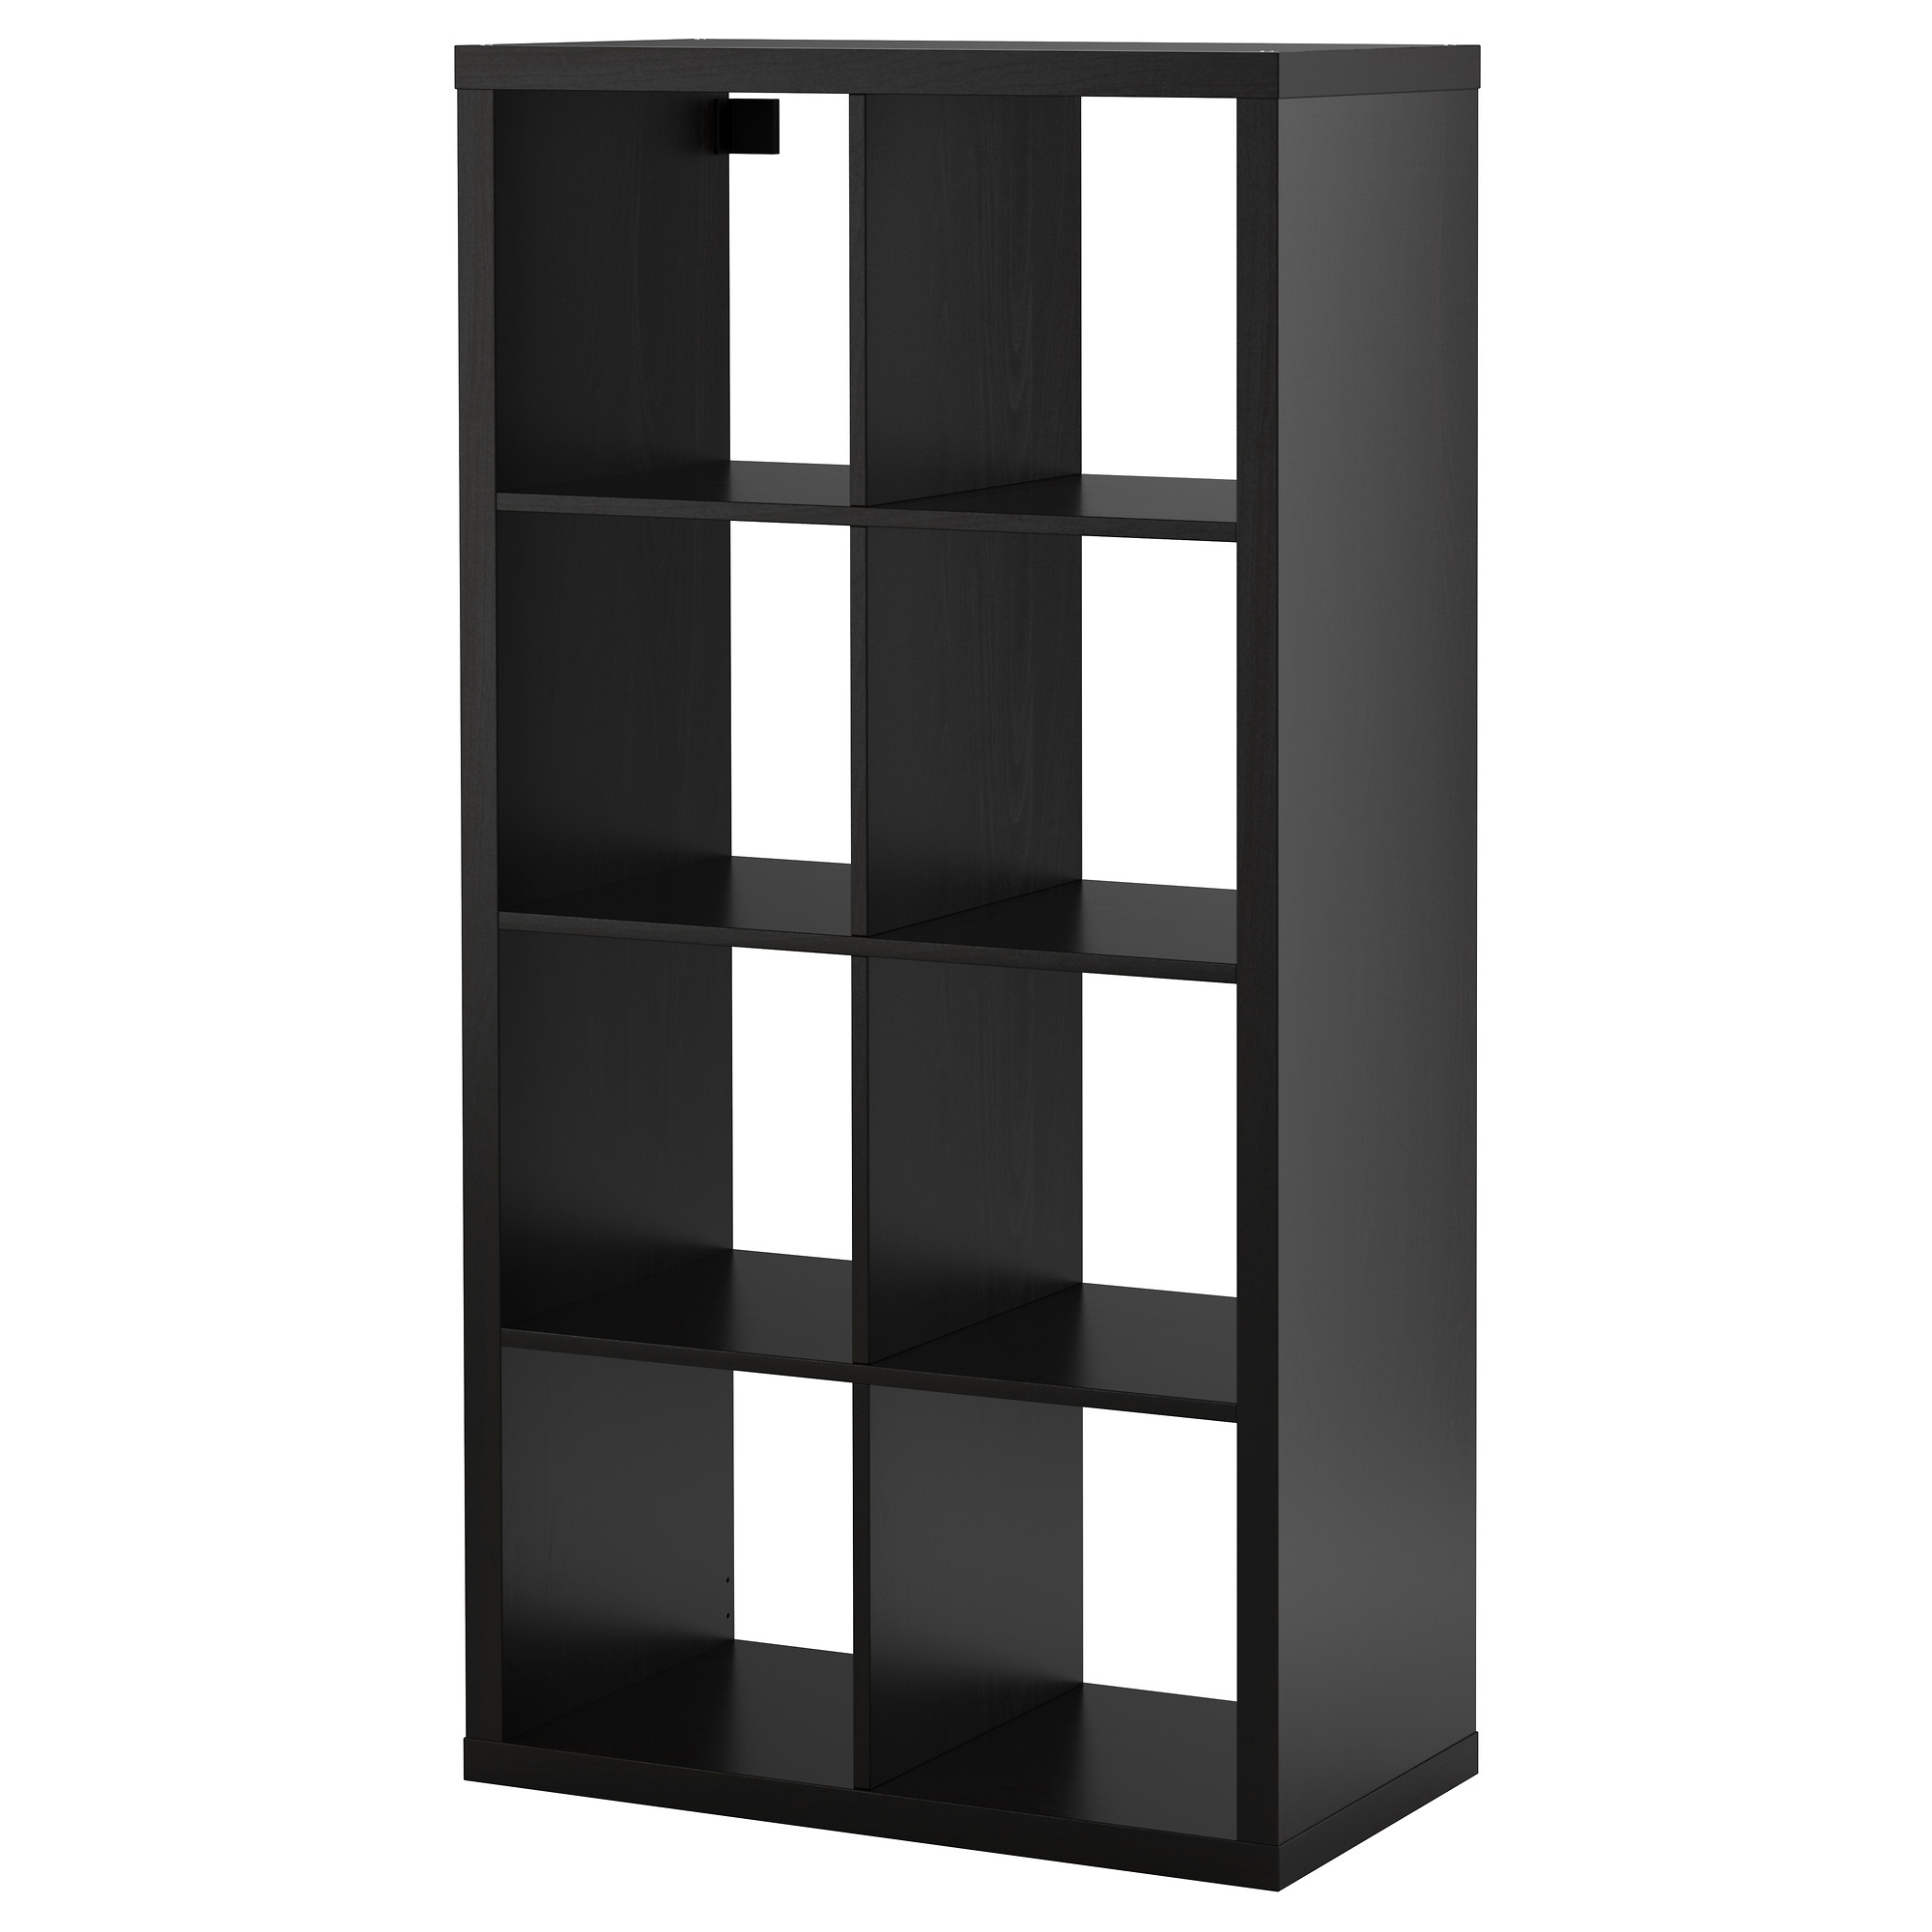 shelving units kallax shelf unit - black-brown - ikea YTIDSHV